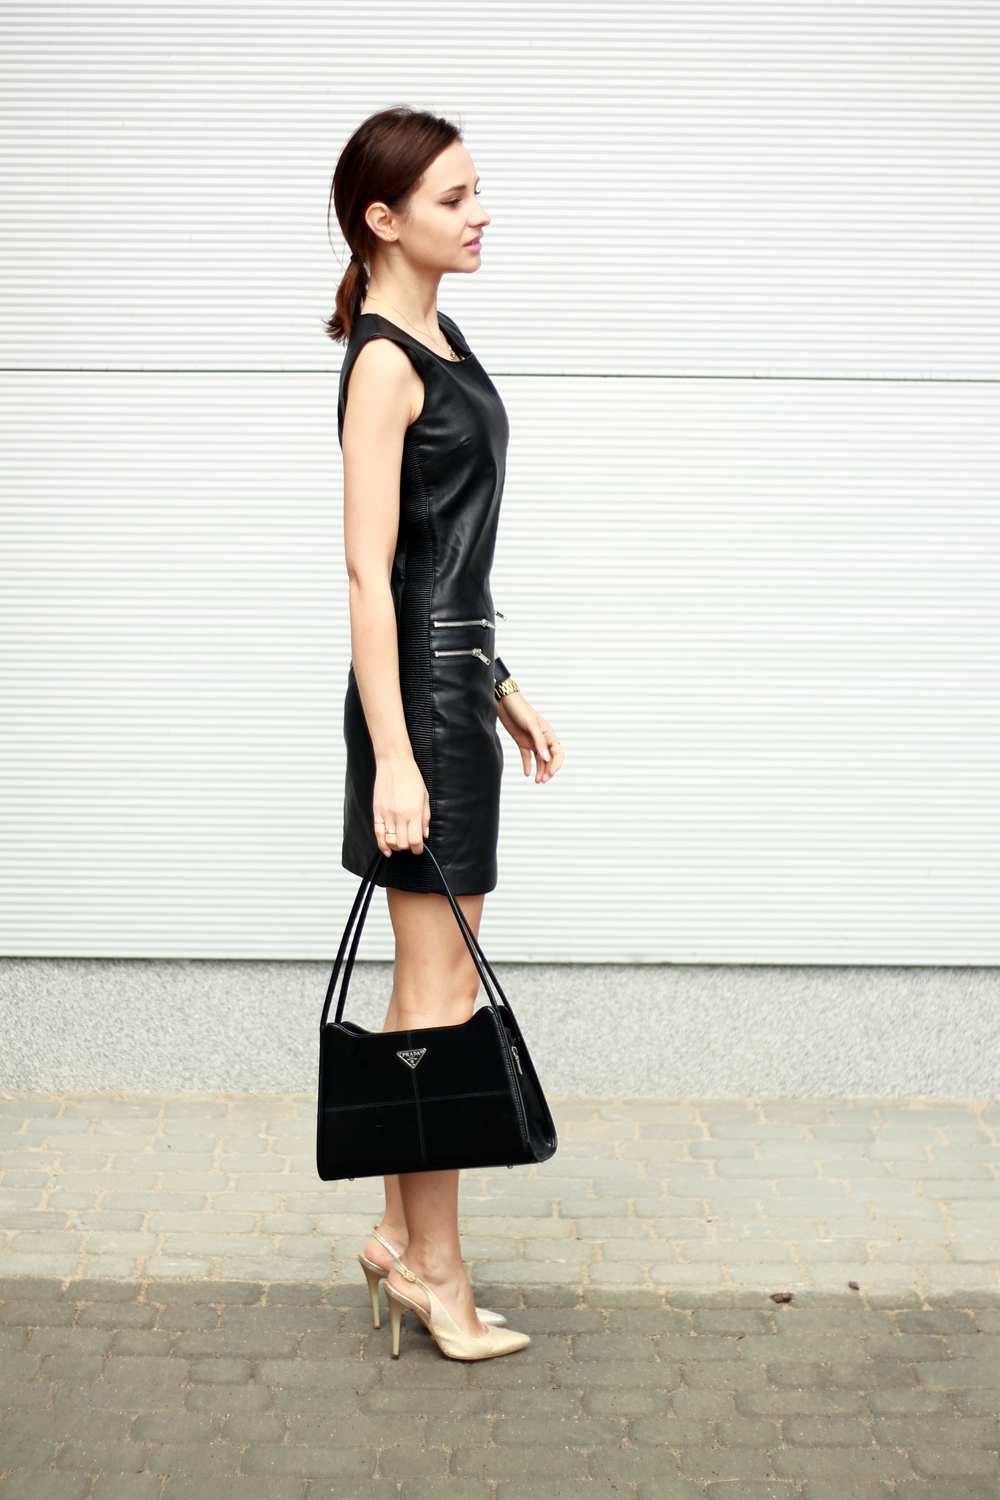 fashion blog street style chic vogue tumblr girl black dress lilicons 1